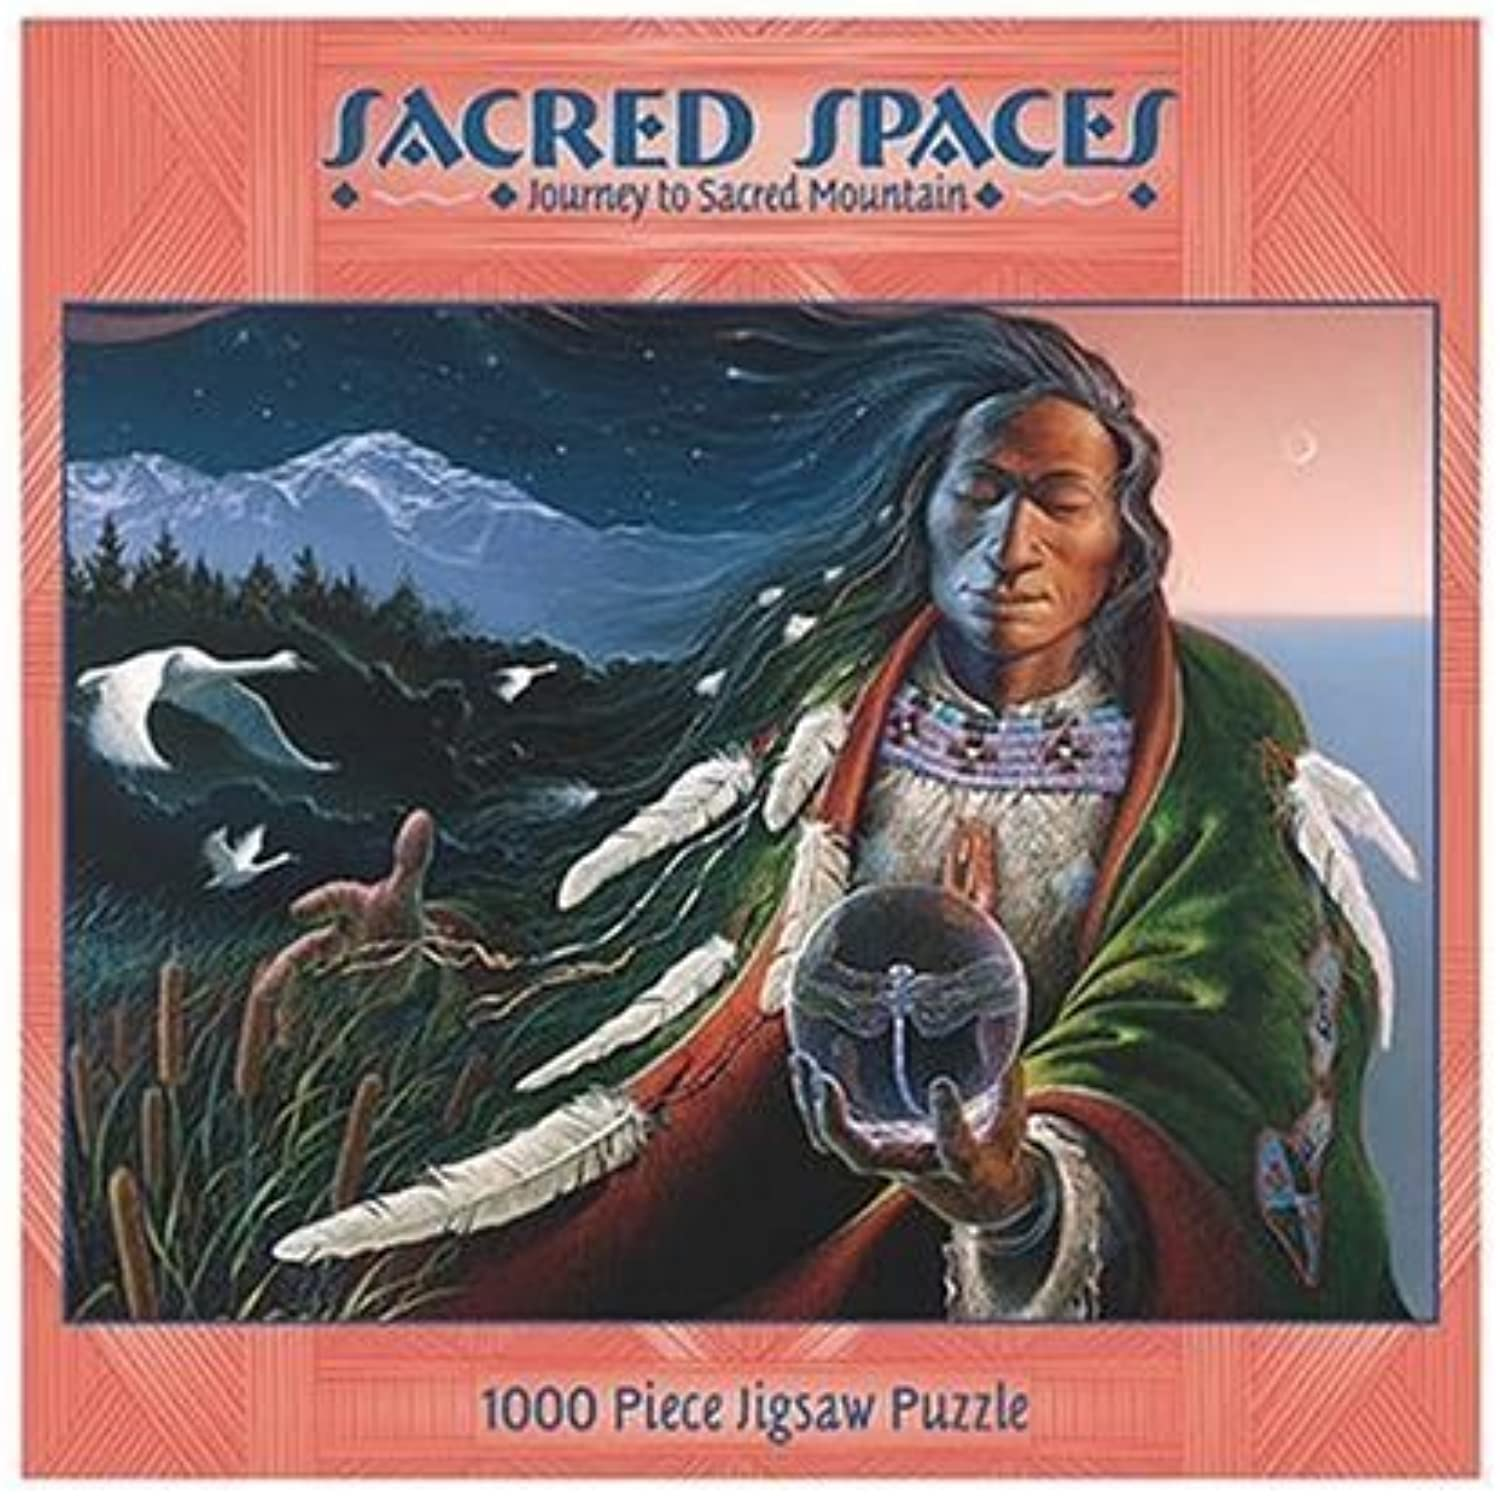 Sacred Spaces 1000Piece Puzzle  Journey To Sacred Mountain by Ceaco